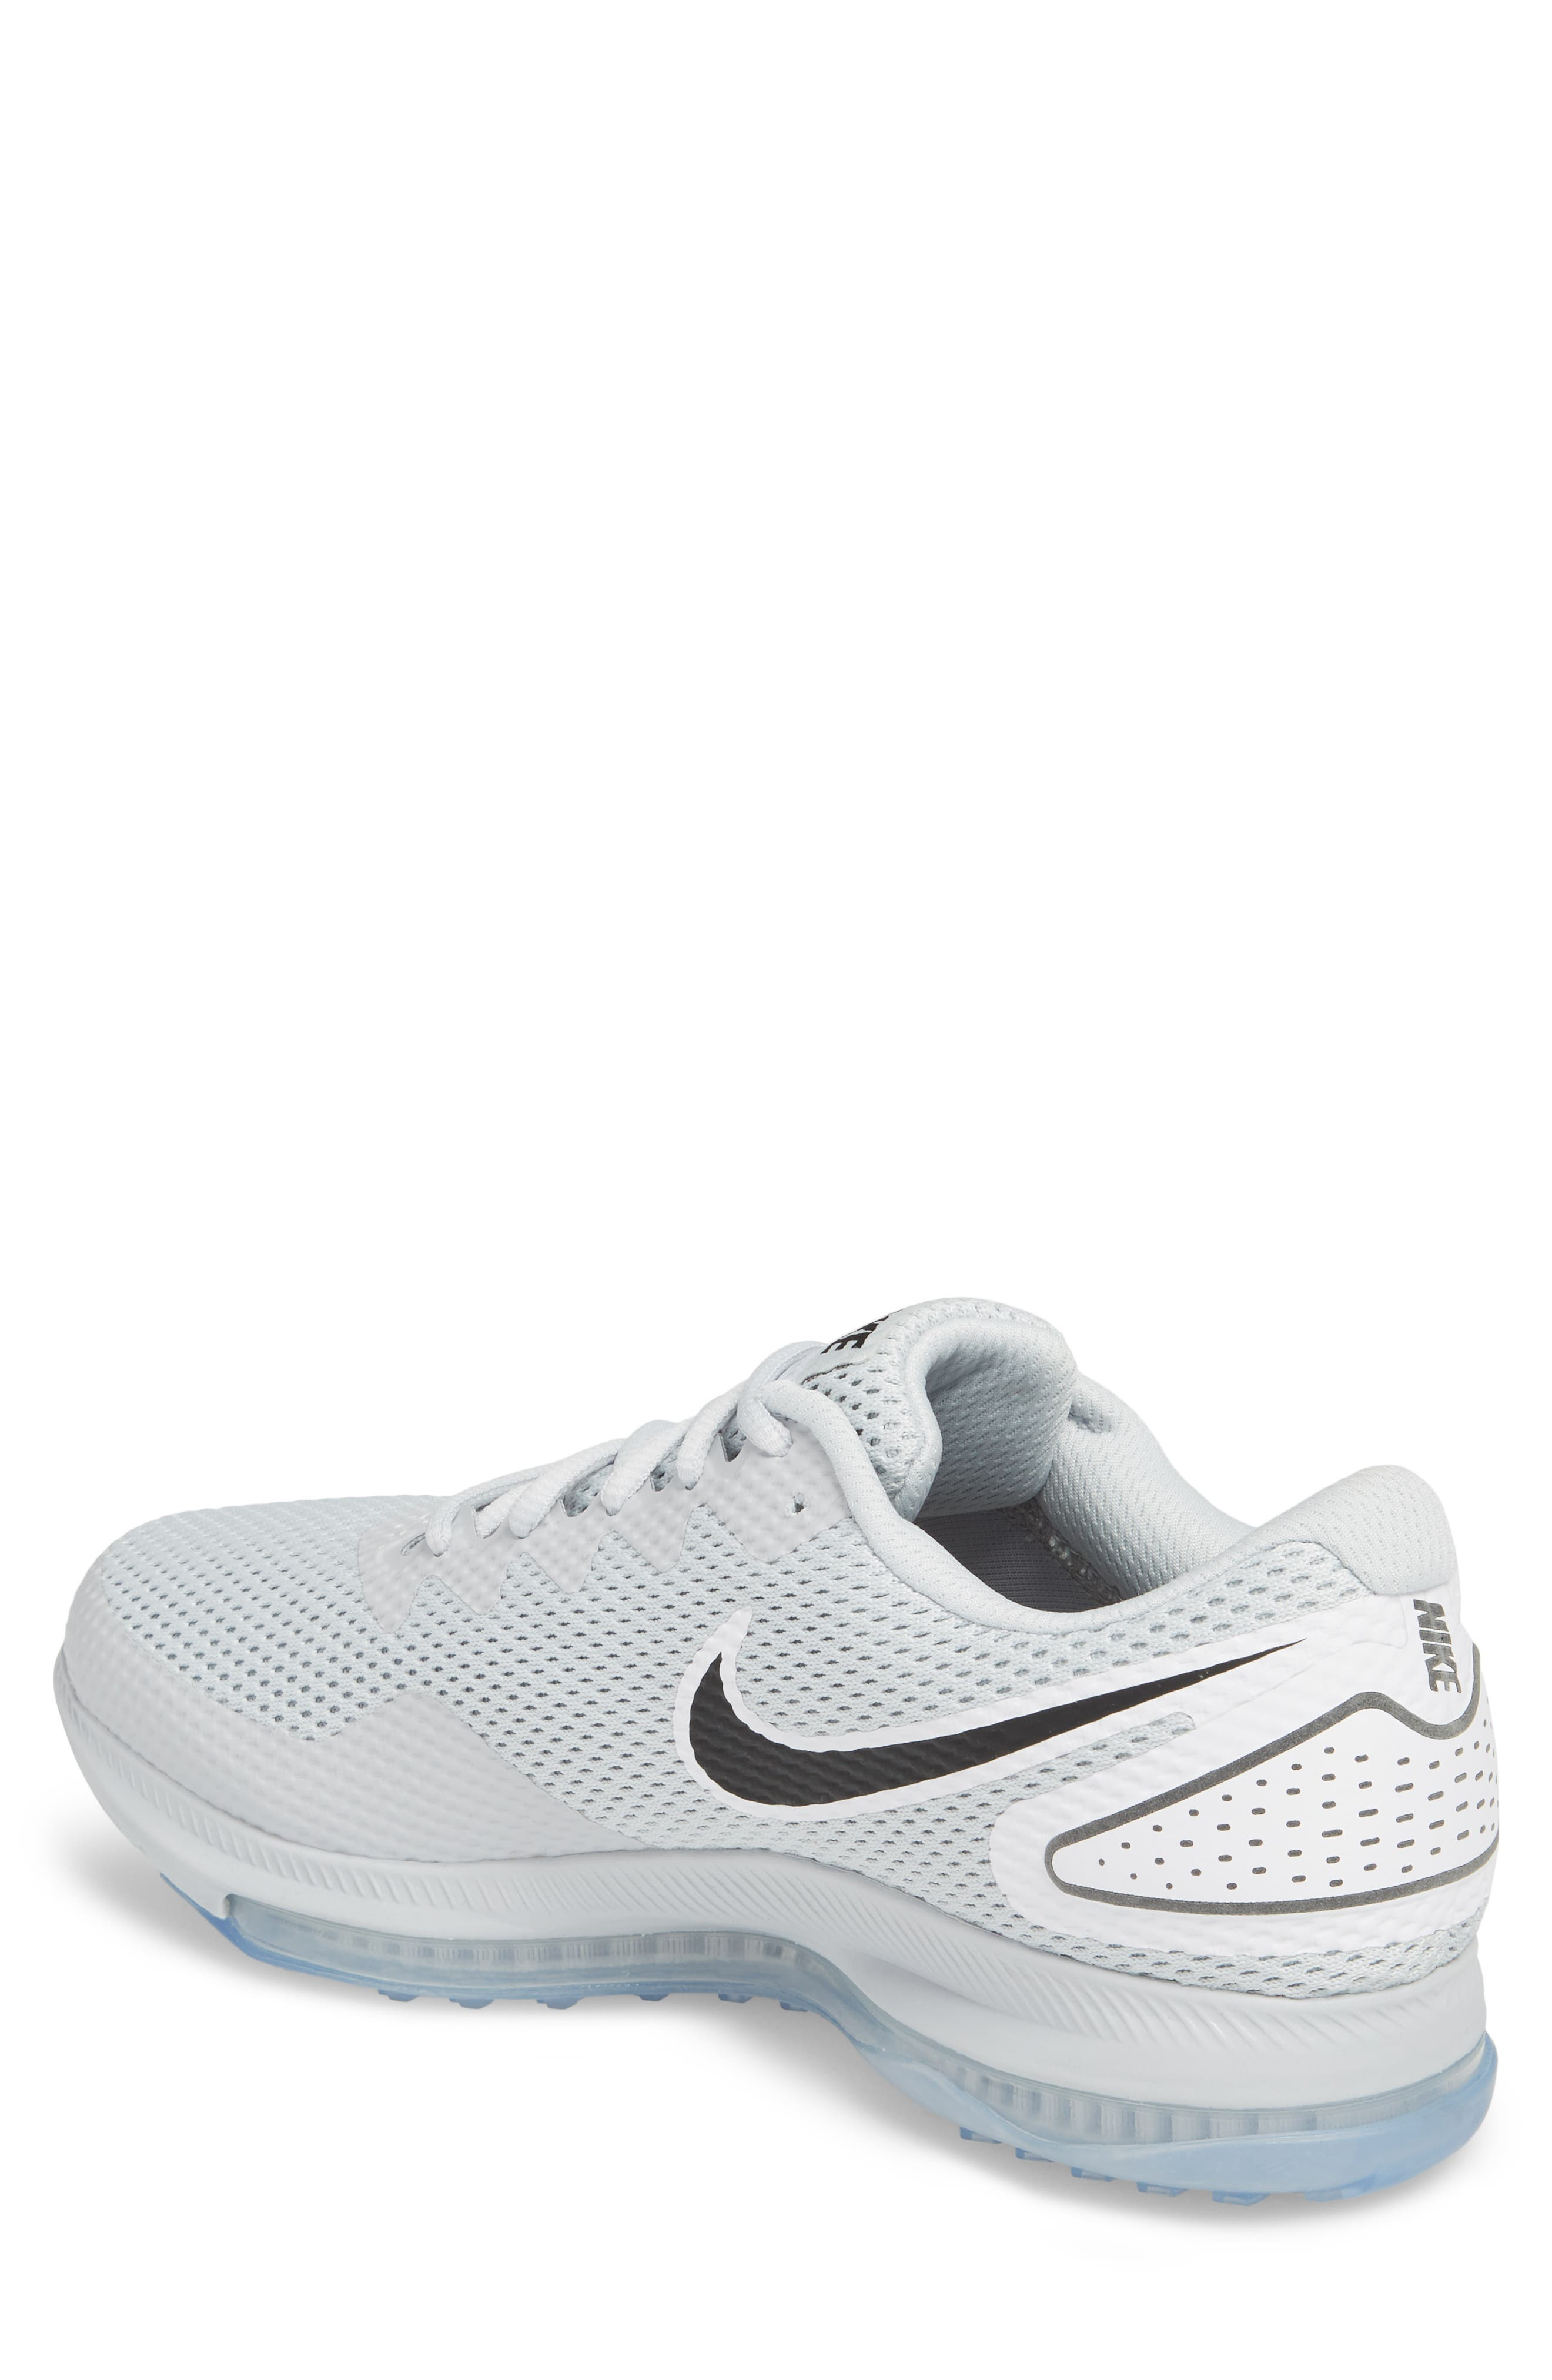 Zoom All Out Low 2 Running Shoe,                             Alternate thumbnail 4, color,                             Pure Platinum/ Black/ White